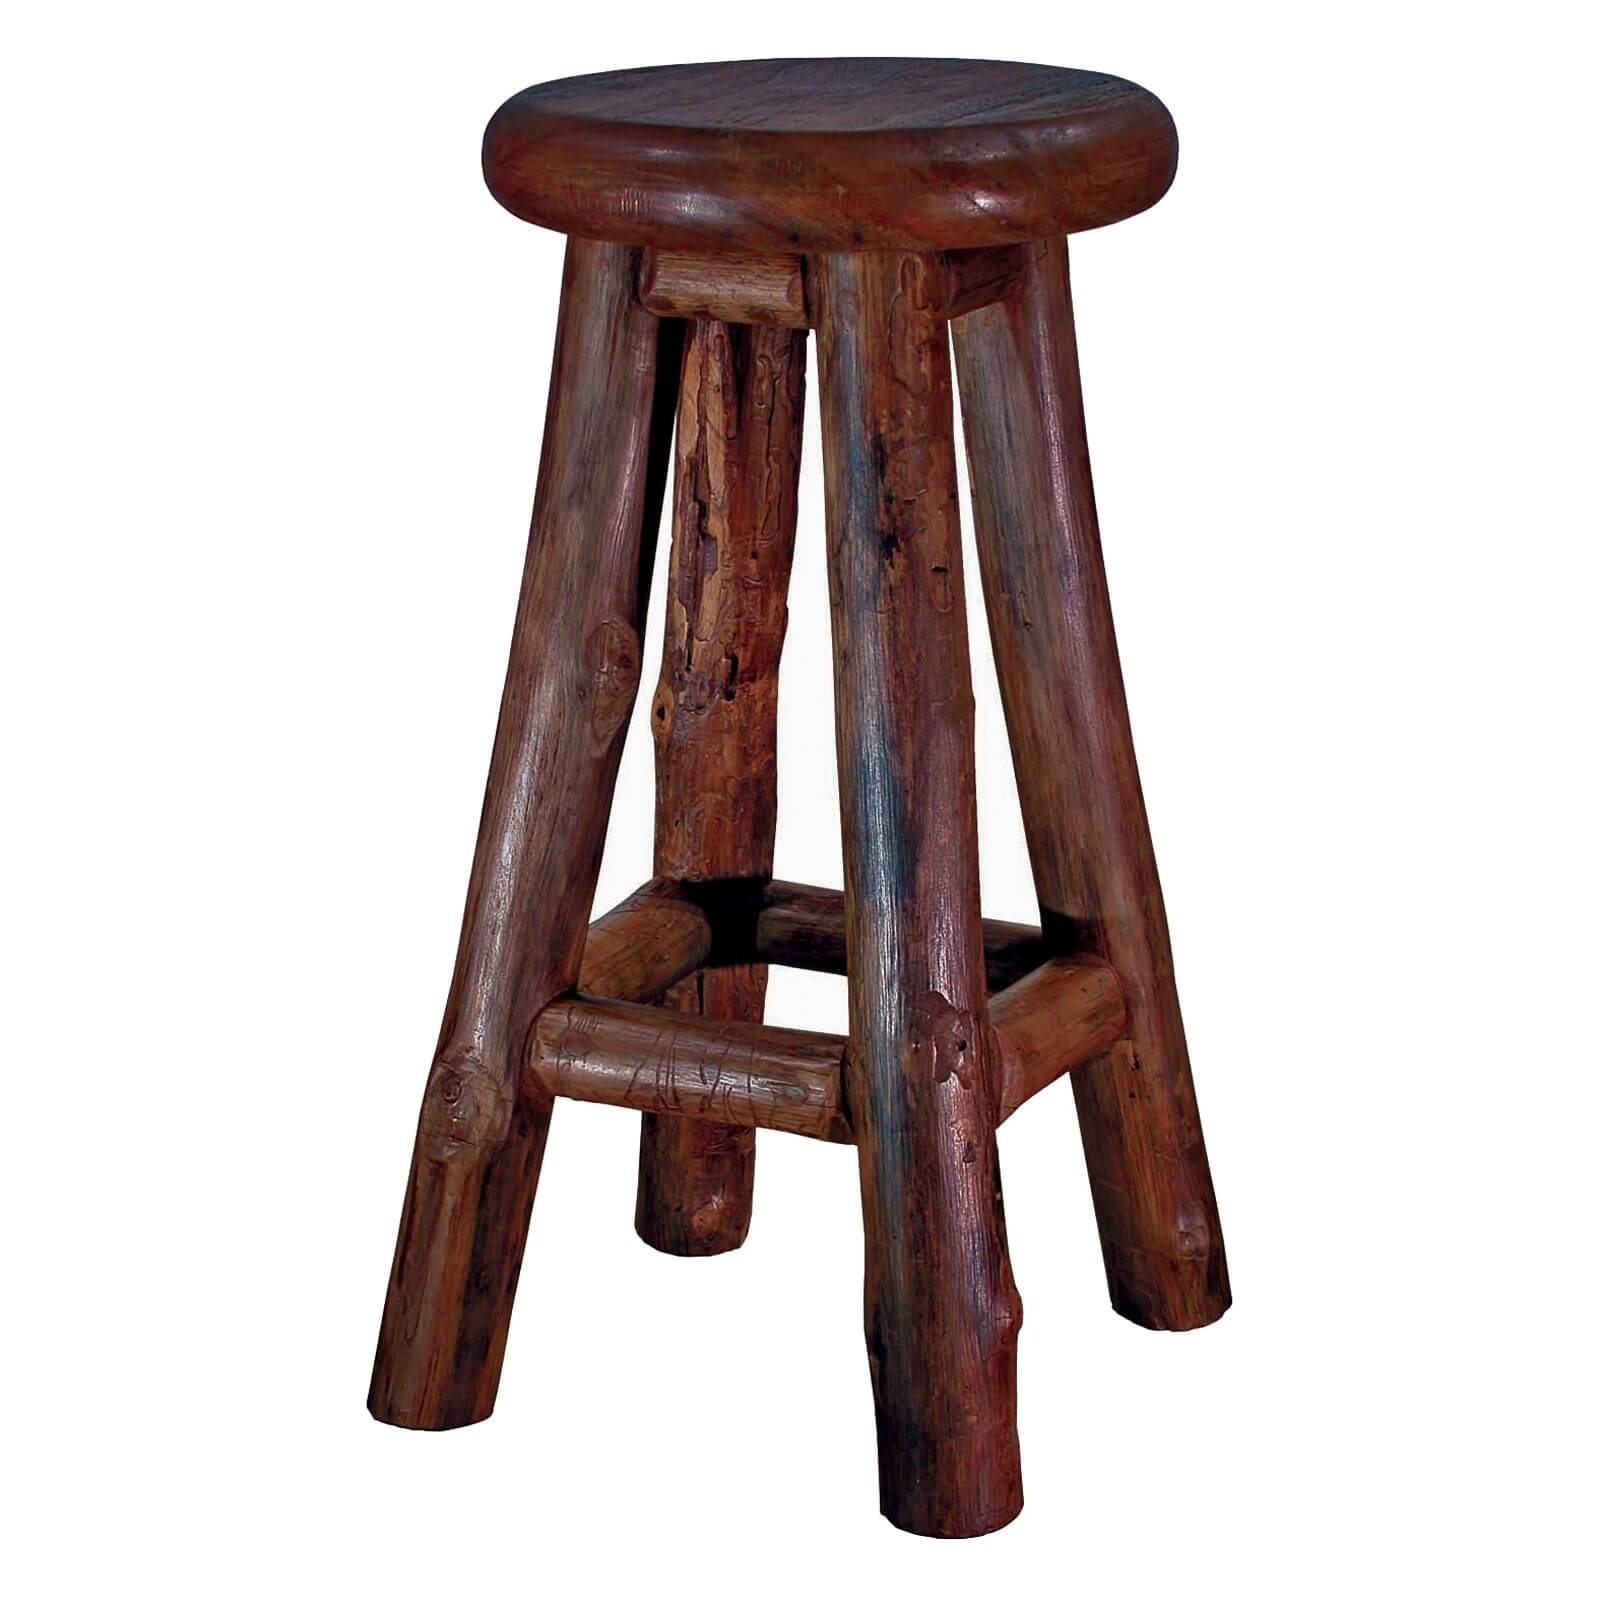 Rustic round backless stool.